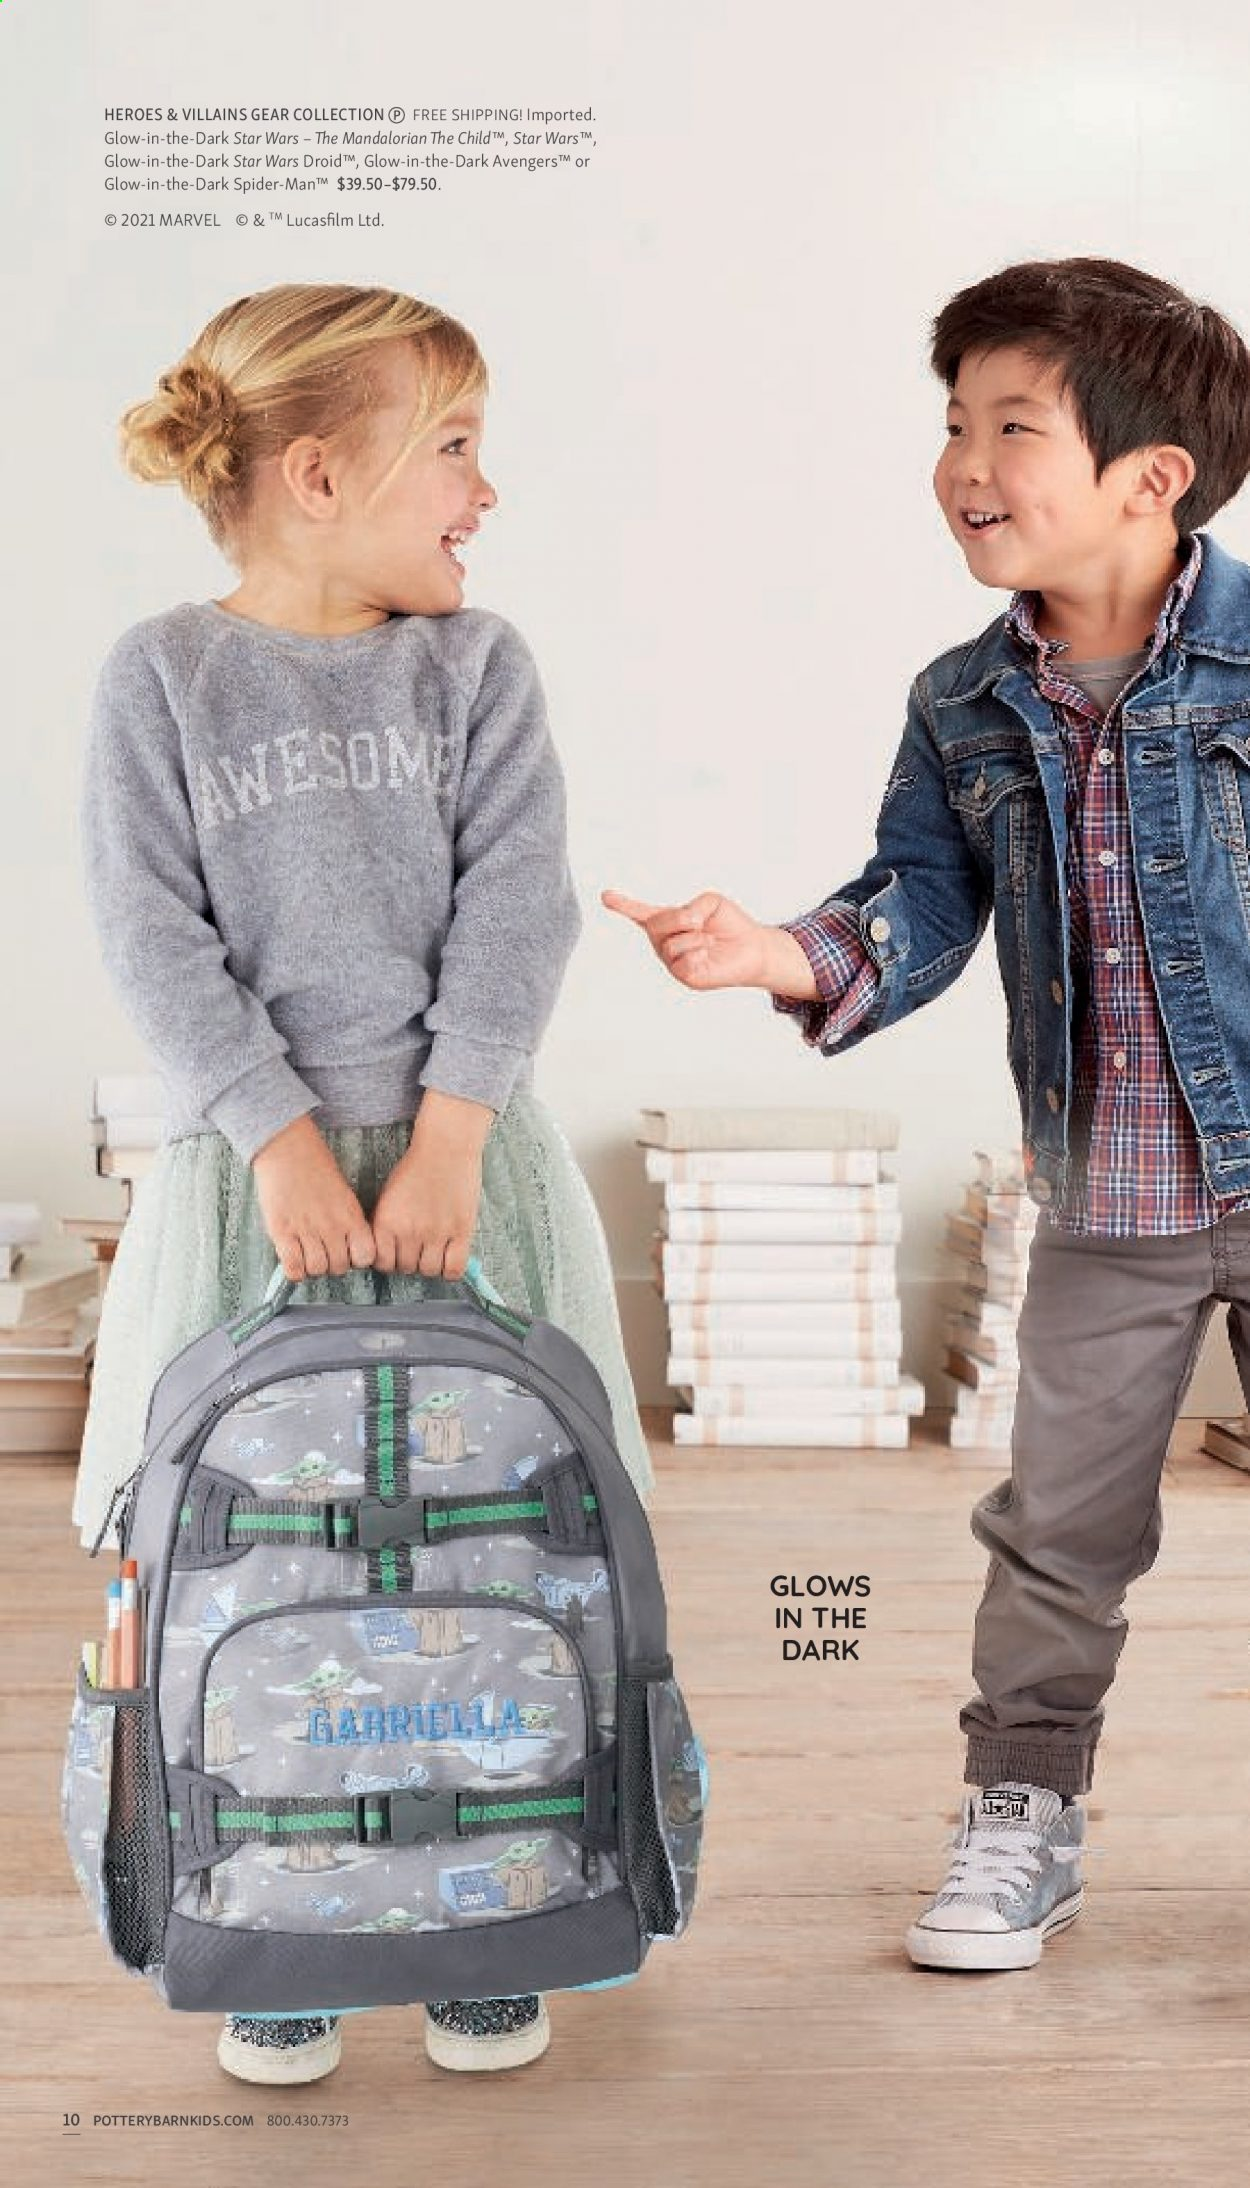 Pottery Barn Ad Kids - Back to School 2021 - Page 10